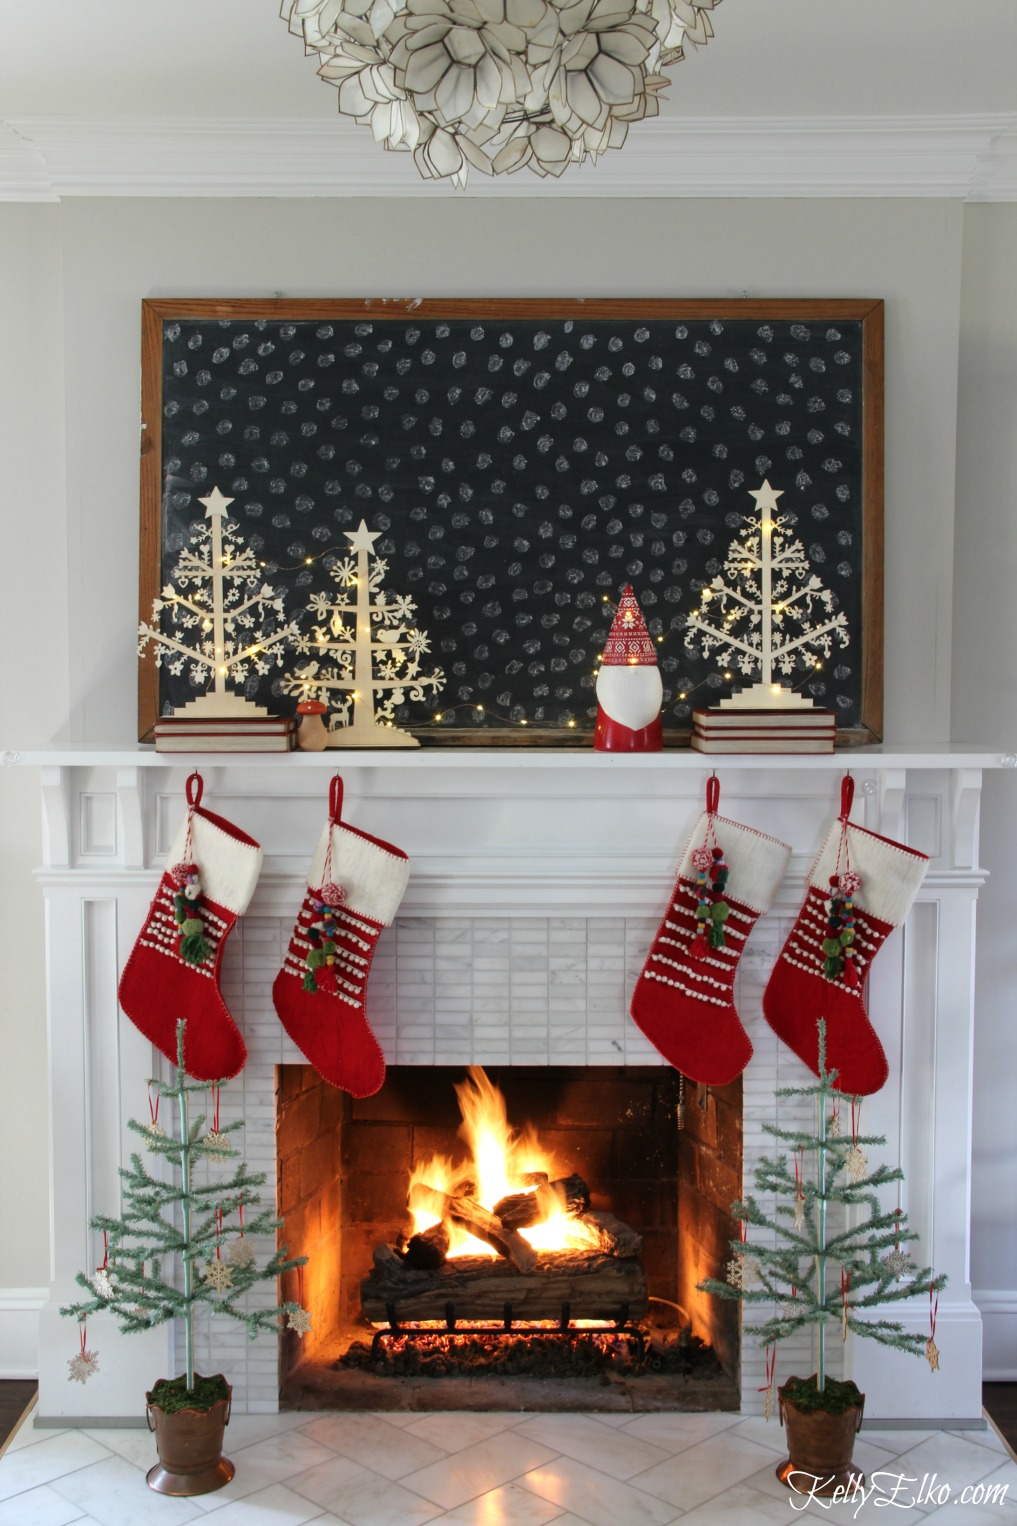 Let's Stay Home for Christmas Home Tour - love this chalkboard mantel kellyelko.com